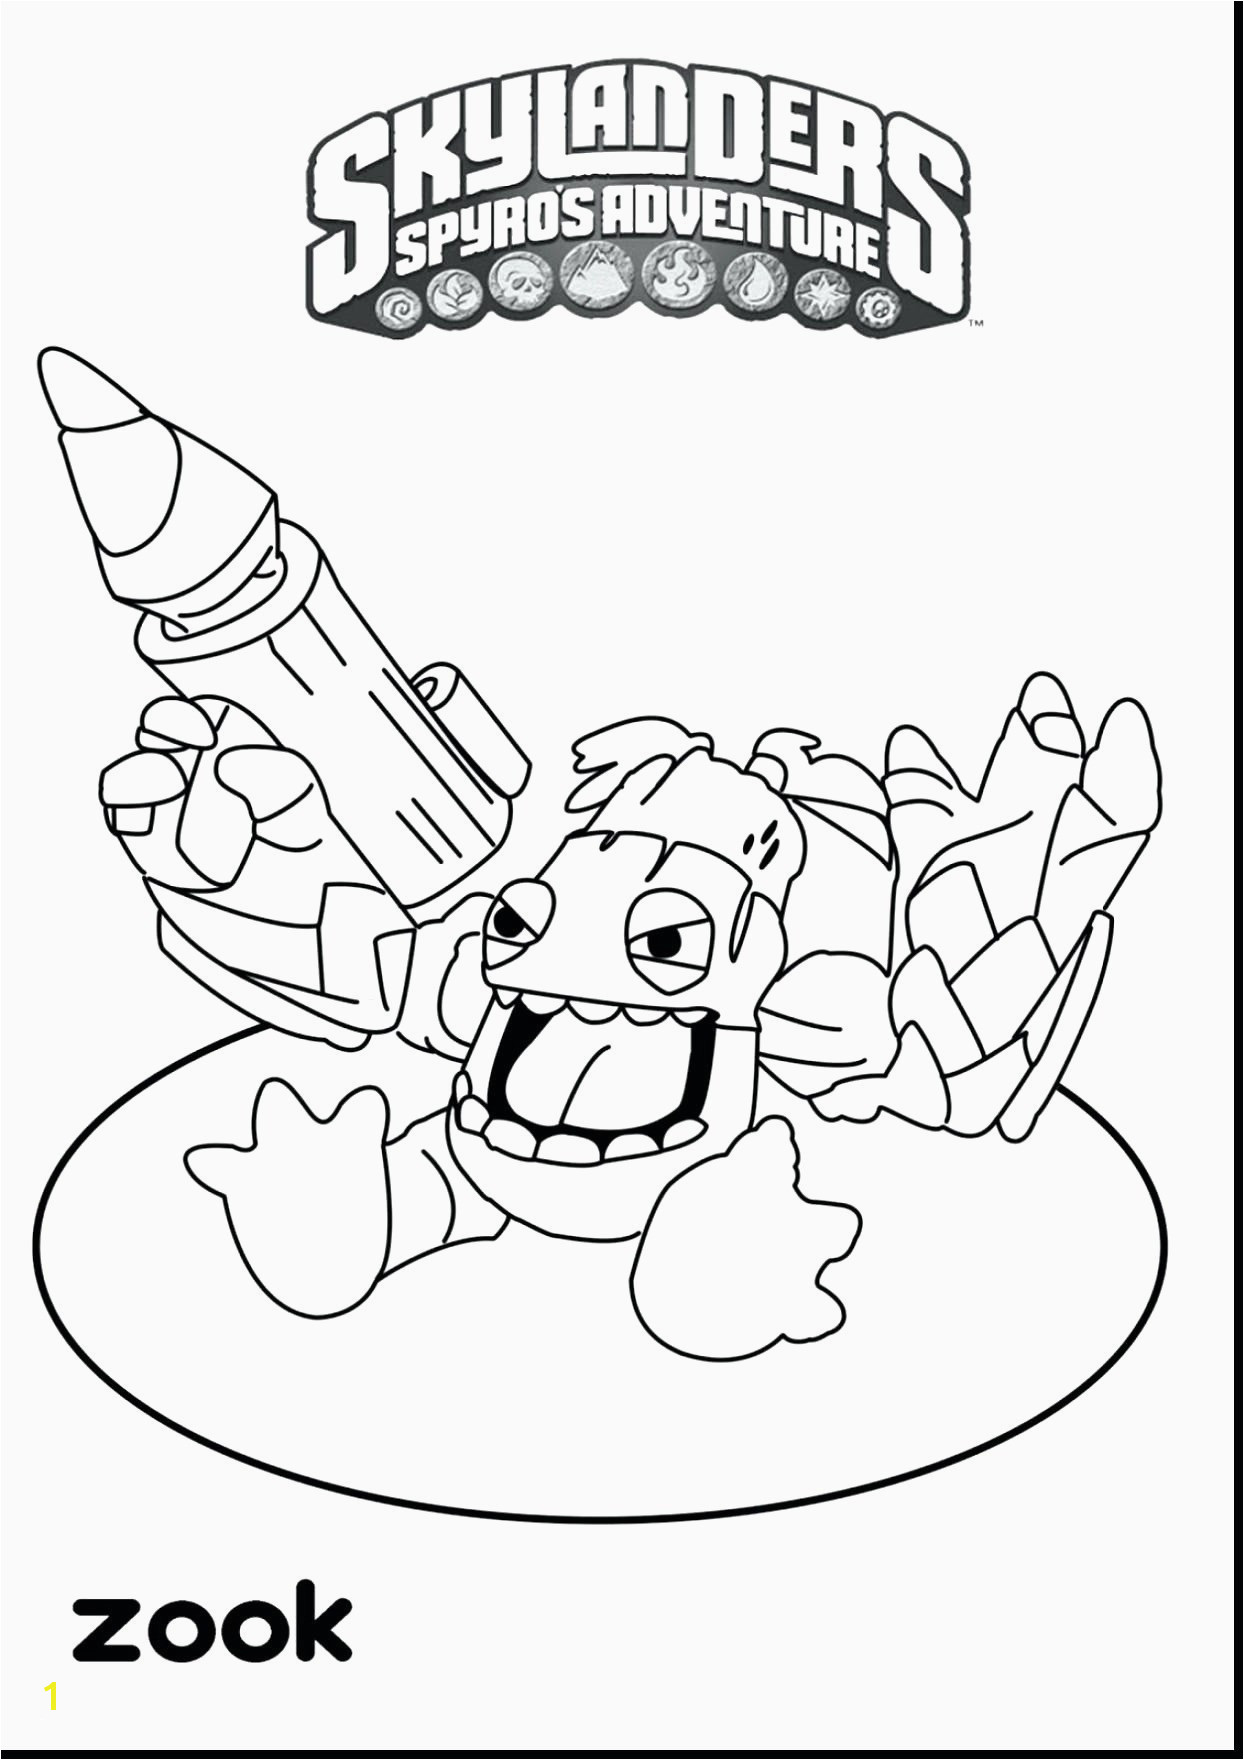 Www.coloring Pages Pages Brilliant Easy to Draw Instruments Home Coloring